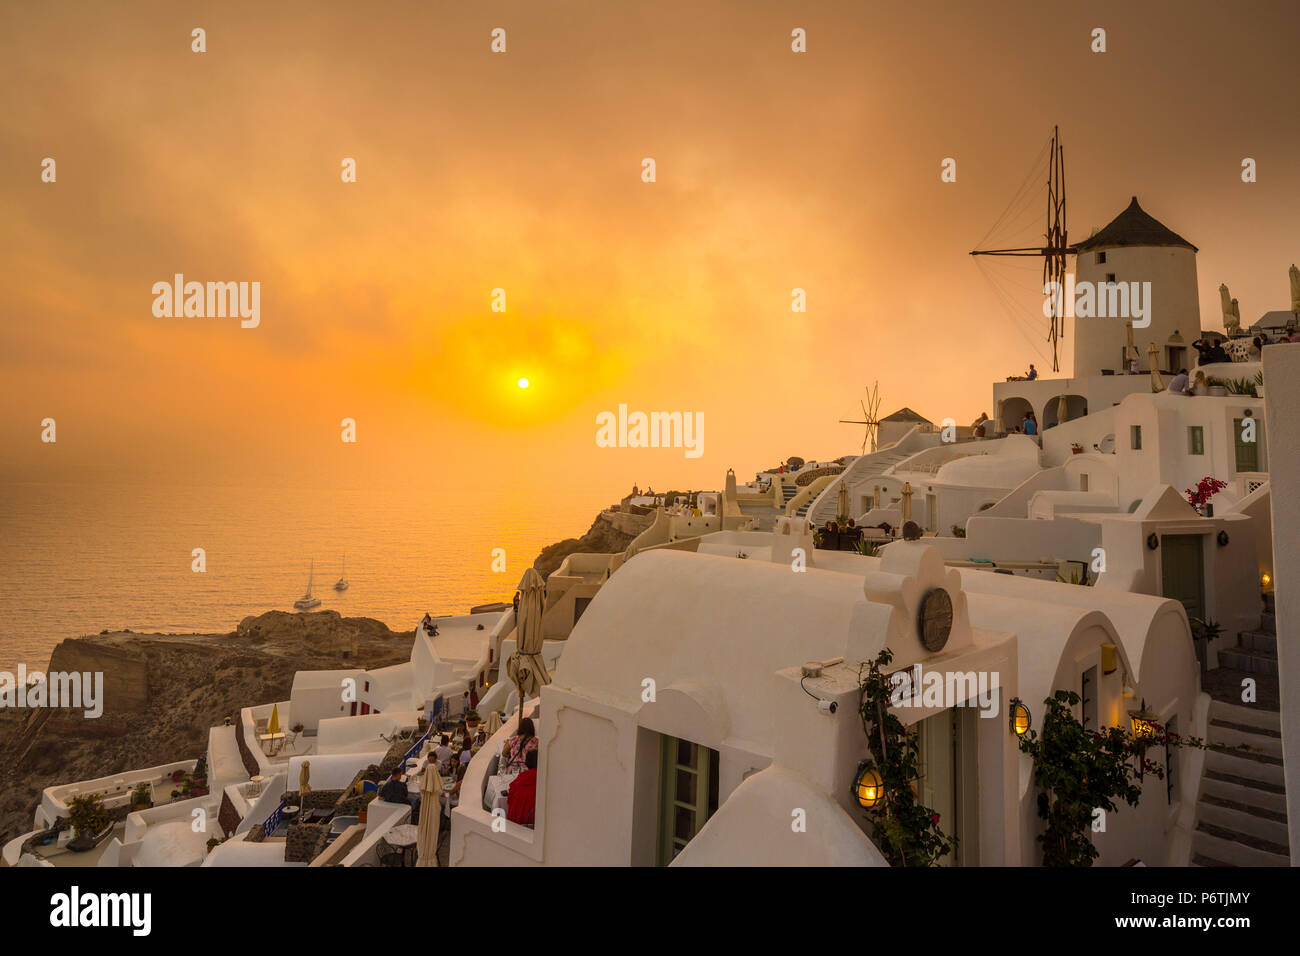 Moulin, Oia, Santorin (thira), îles Cyclades, Grèce Photo Stock